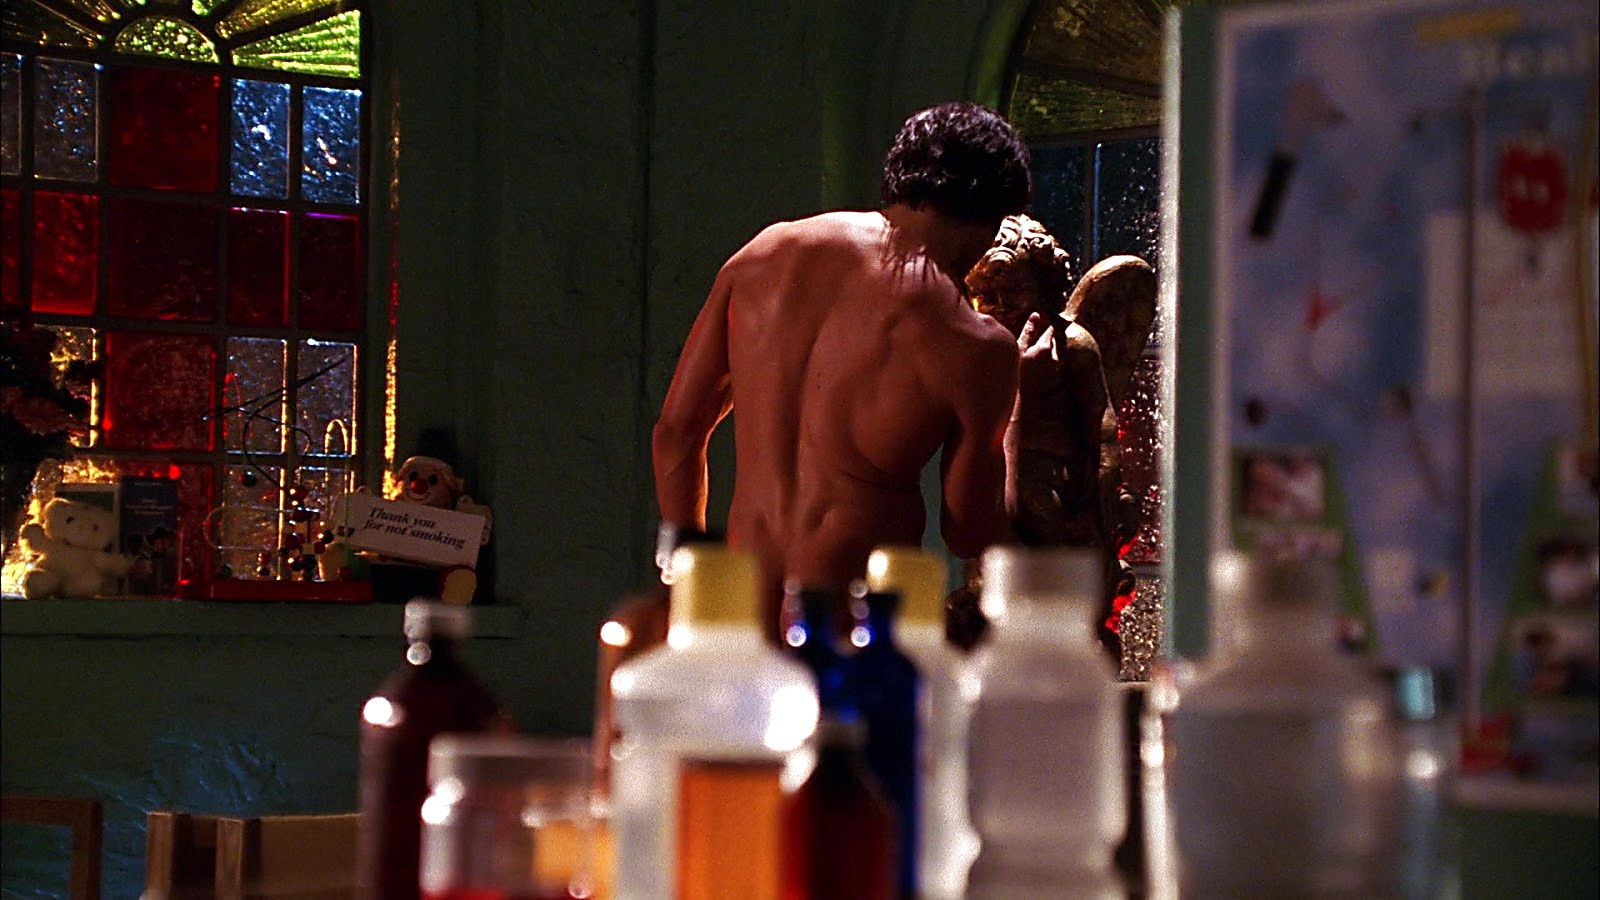 Tom Welling sexy shirtless scene April 12, 2020, 9am